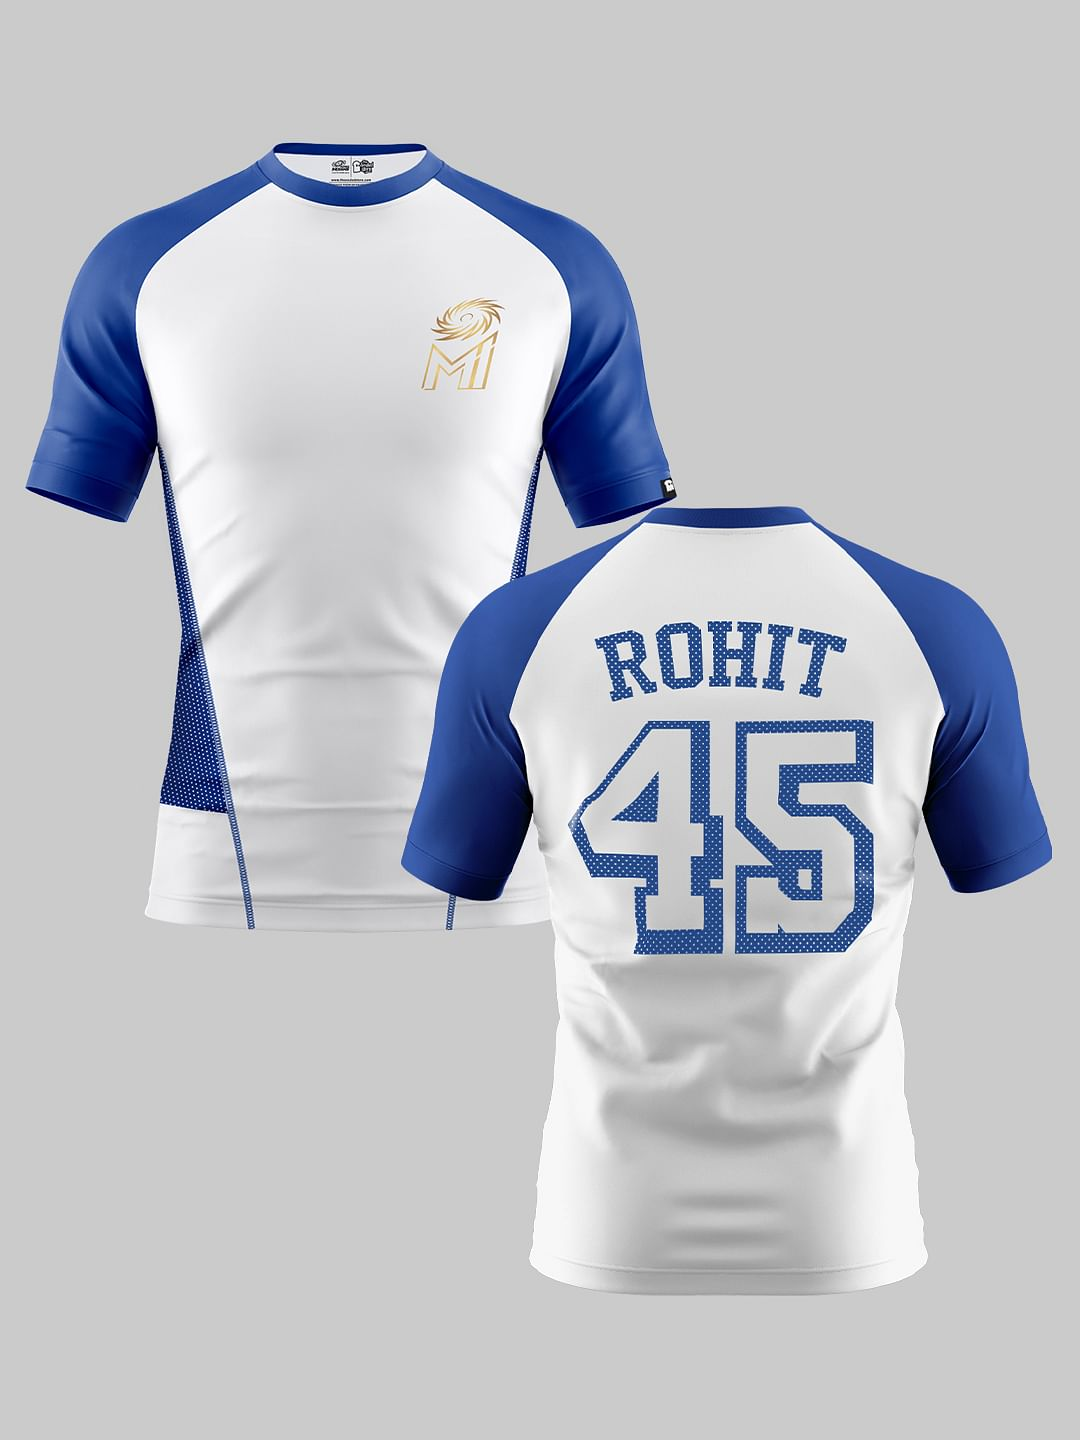 Mumbai Indians 2020 Official IPL Fan Jersey M // 38-40in ROHIT 45